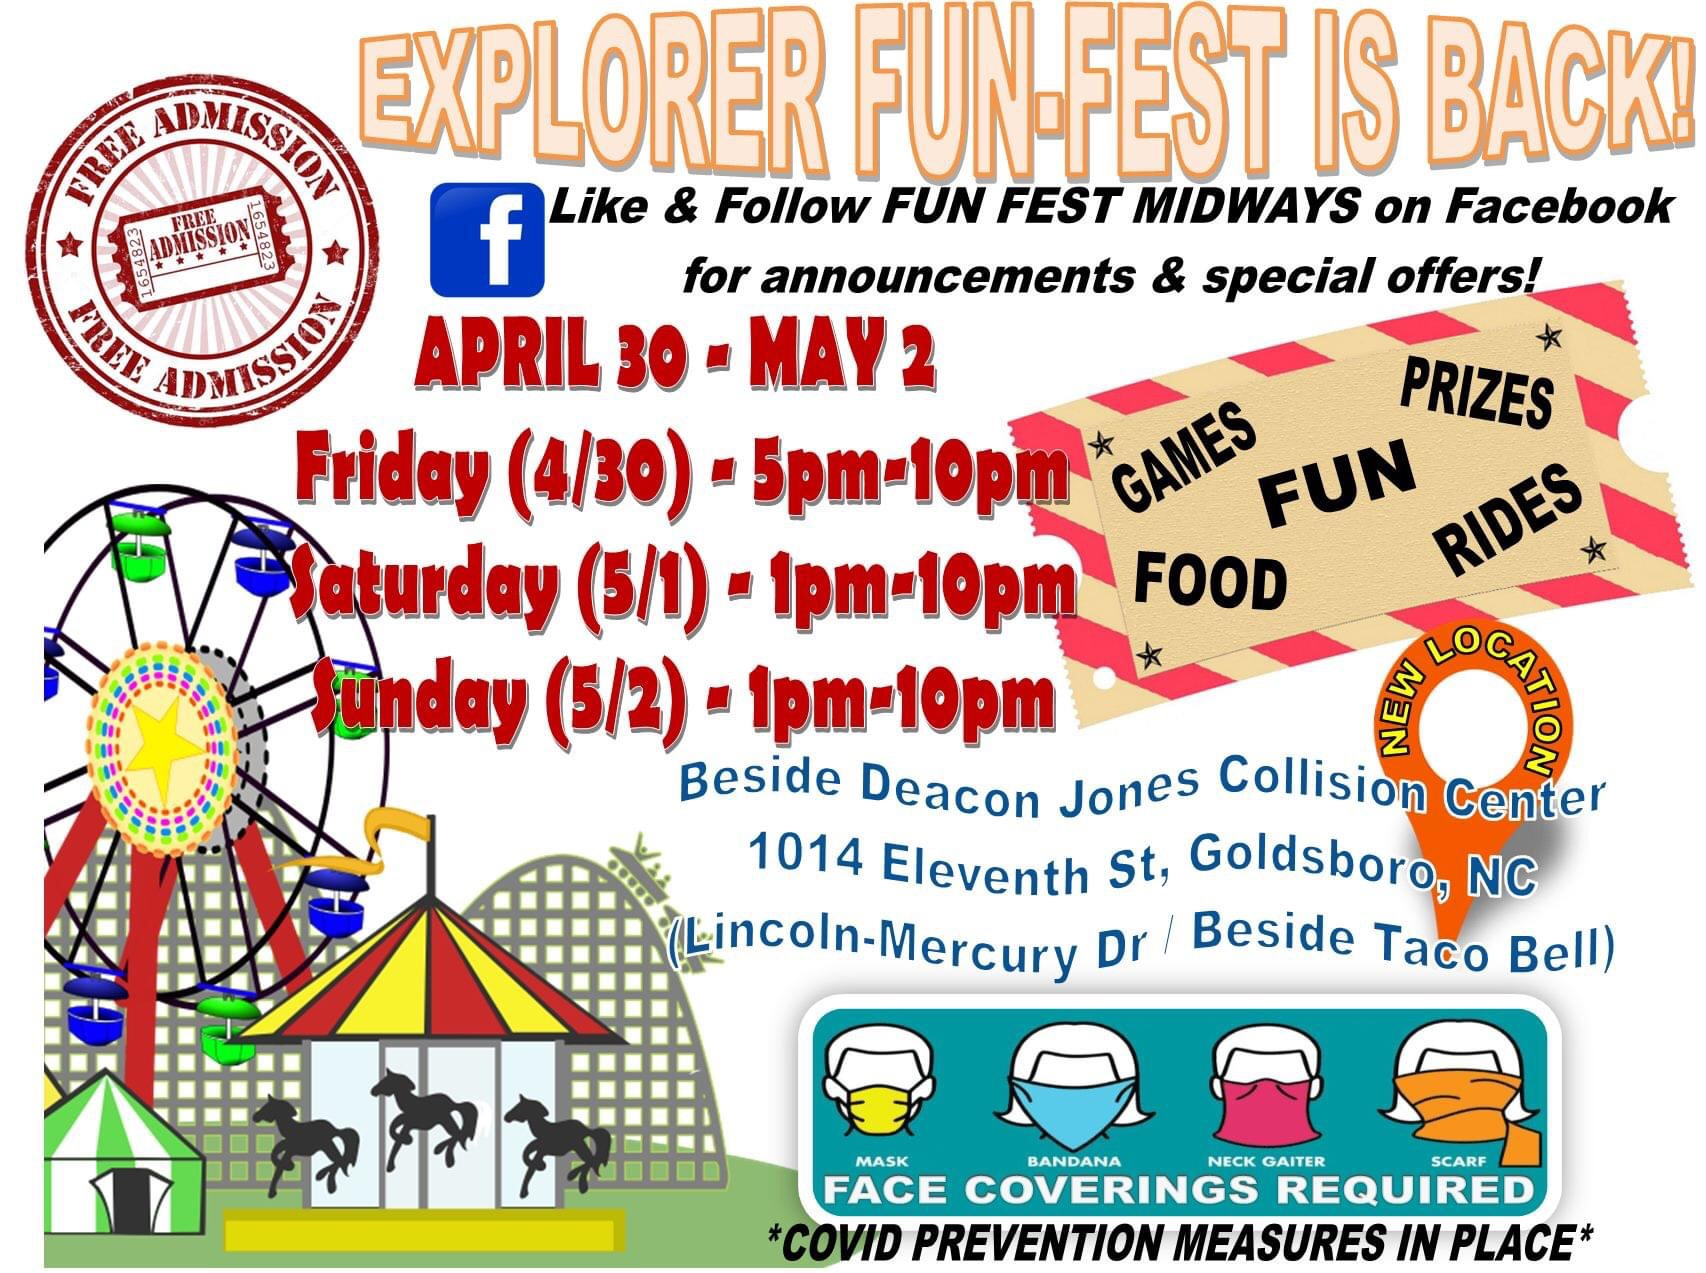 GPD Holds Explorer FunFest This Weekend